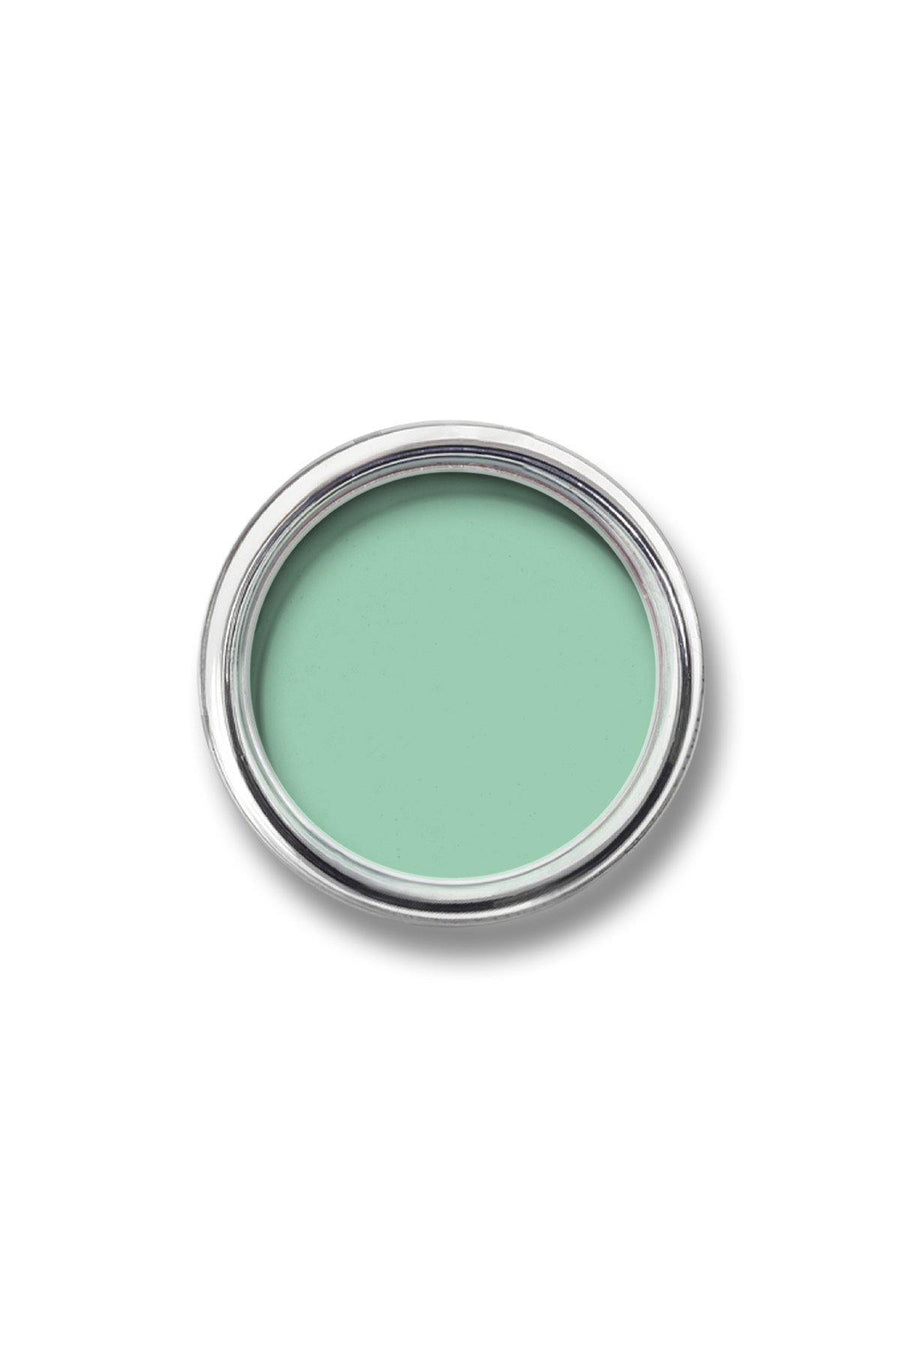 Color Correcting JAR C2 - Green - Blend Mineral Cosmetics